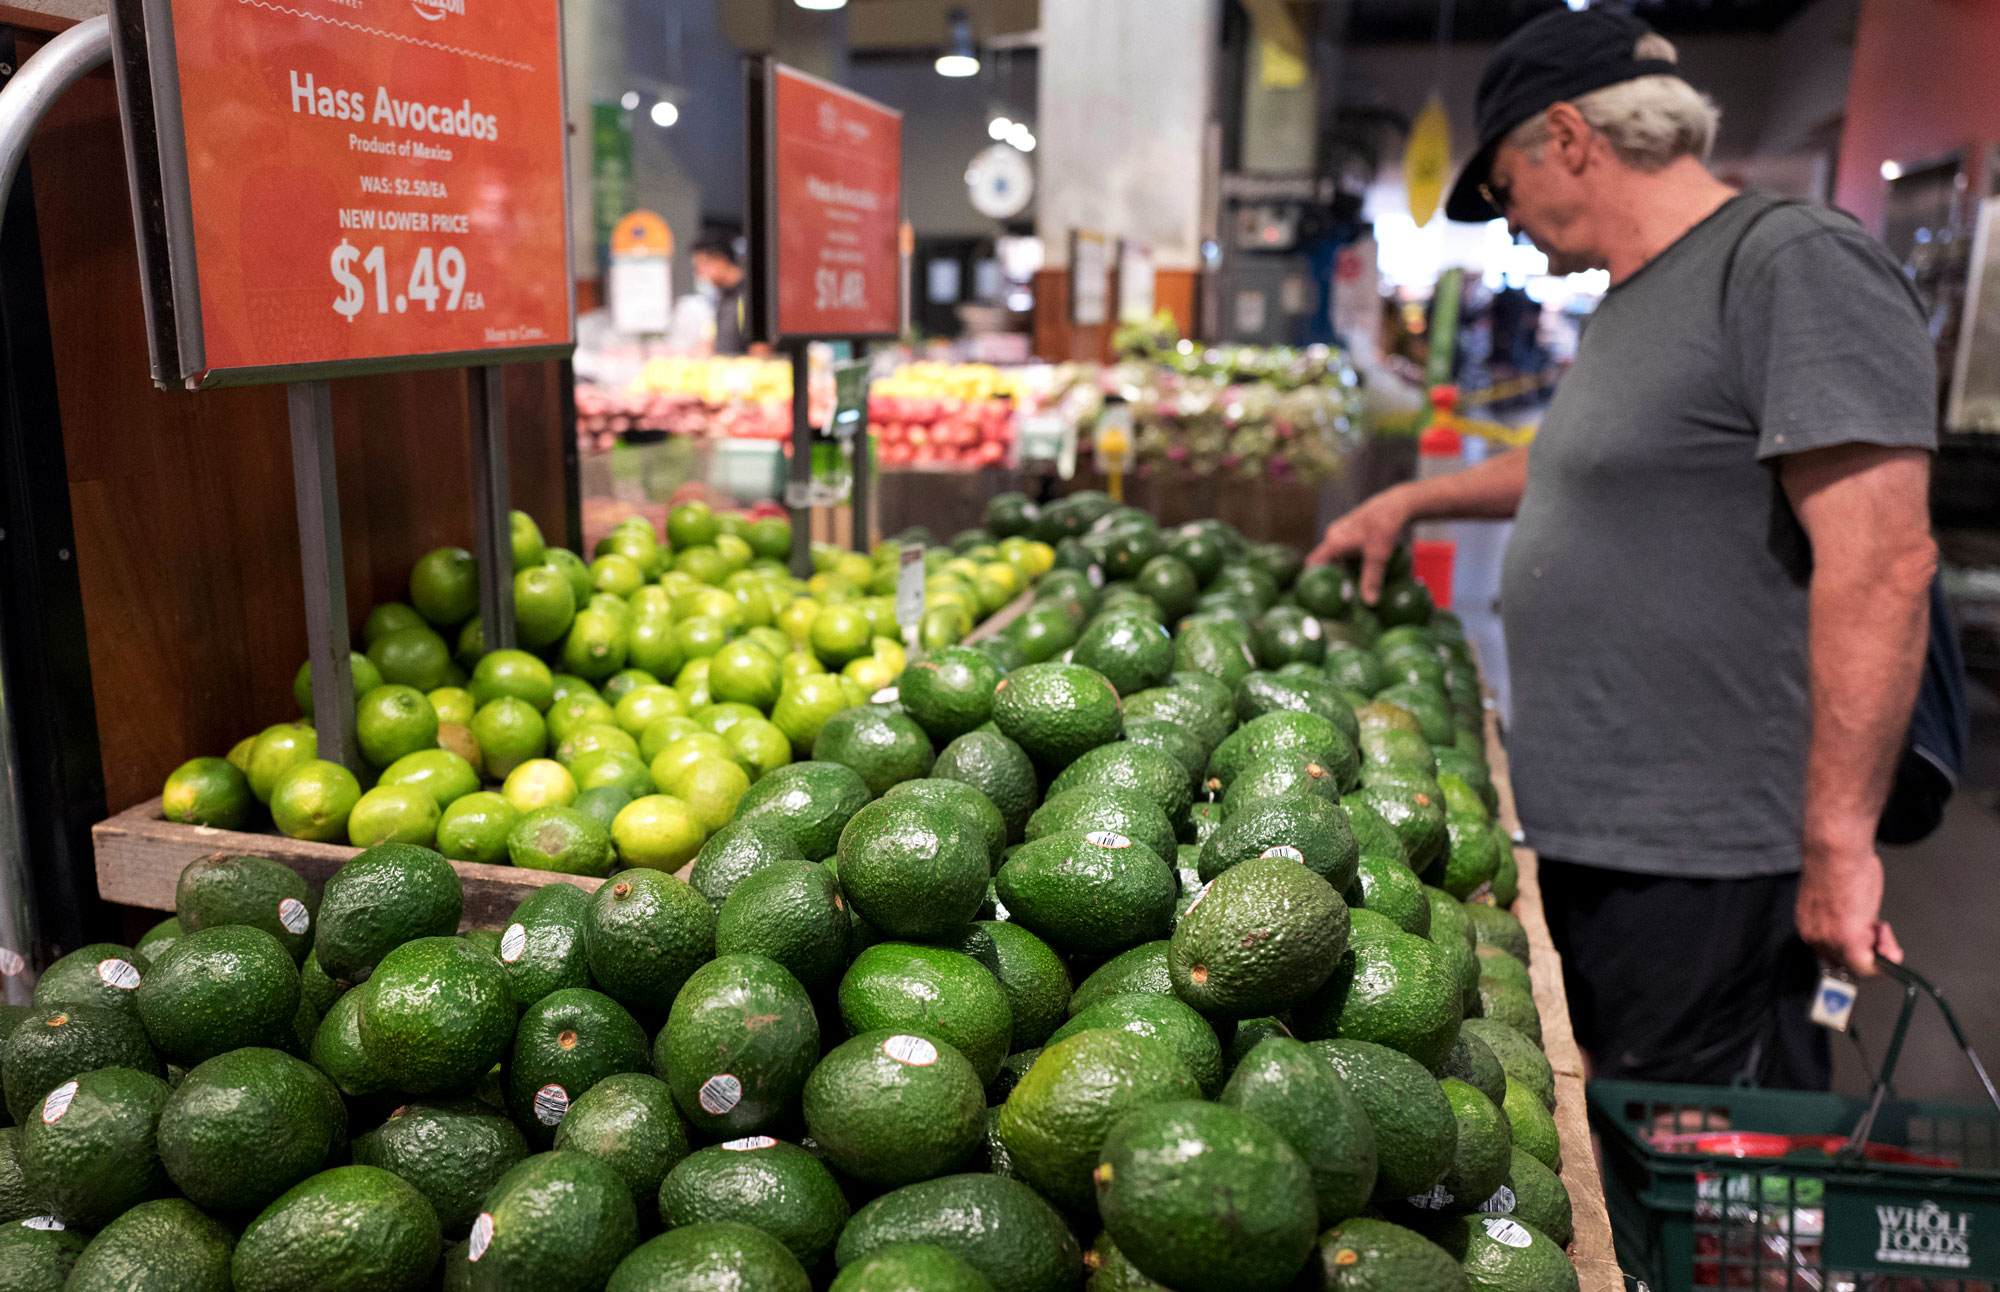 A man shops for avocados in Whole Foods in New York